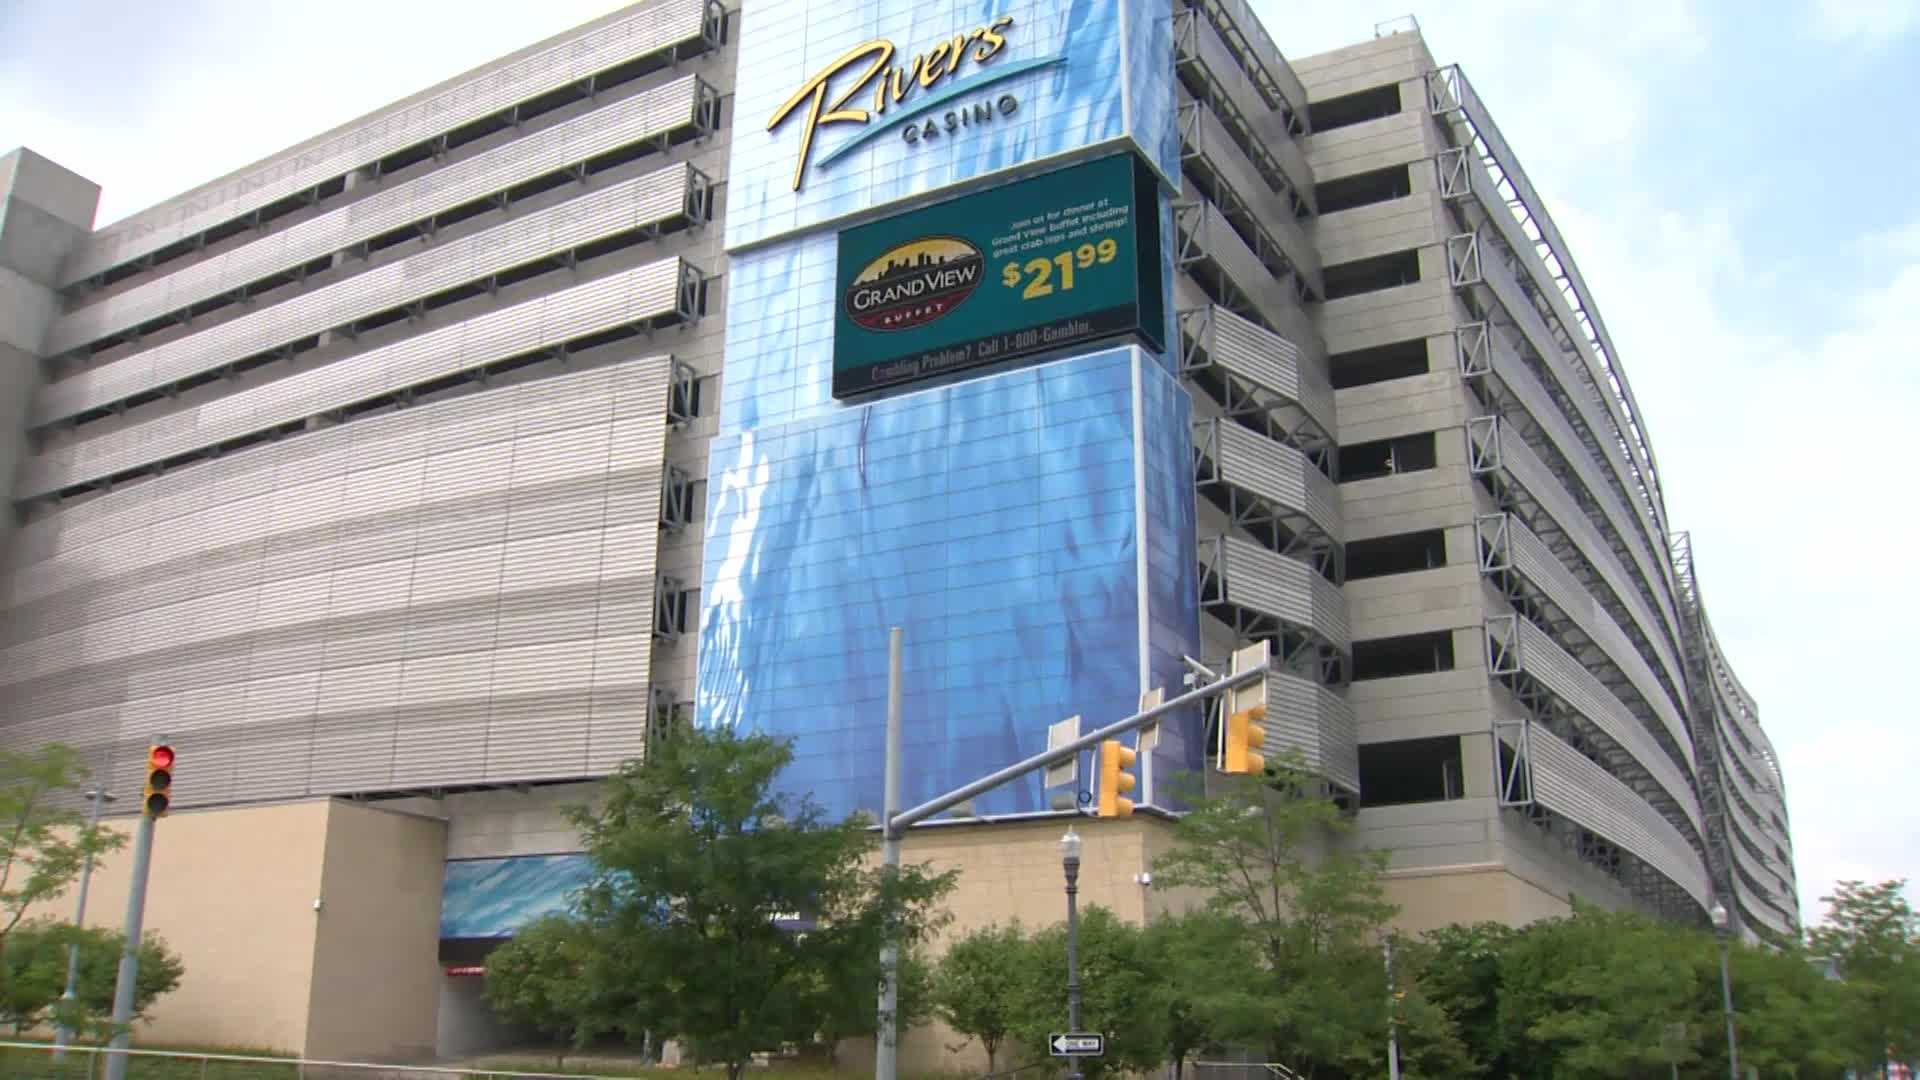 Rivers Casino